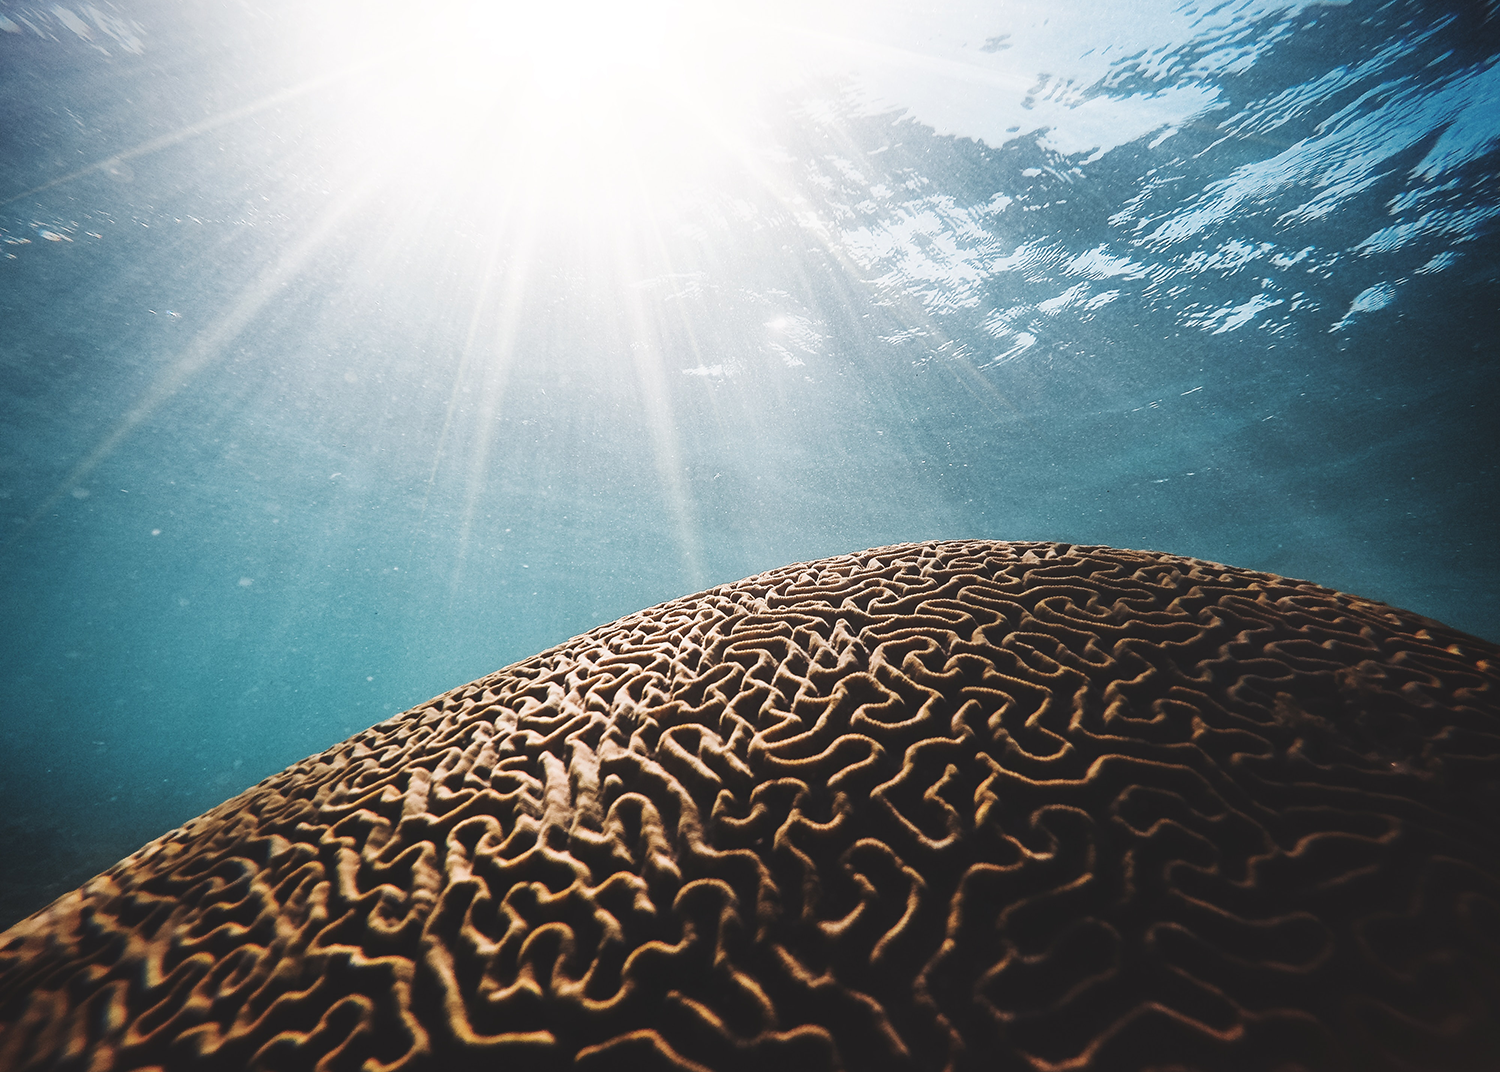 Sun shinging down through water onto brain coral in the ocean